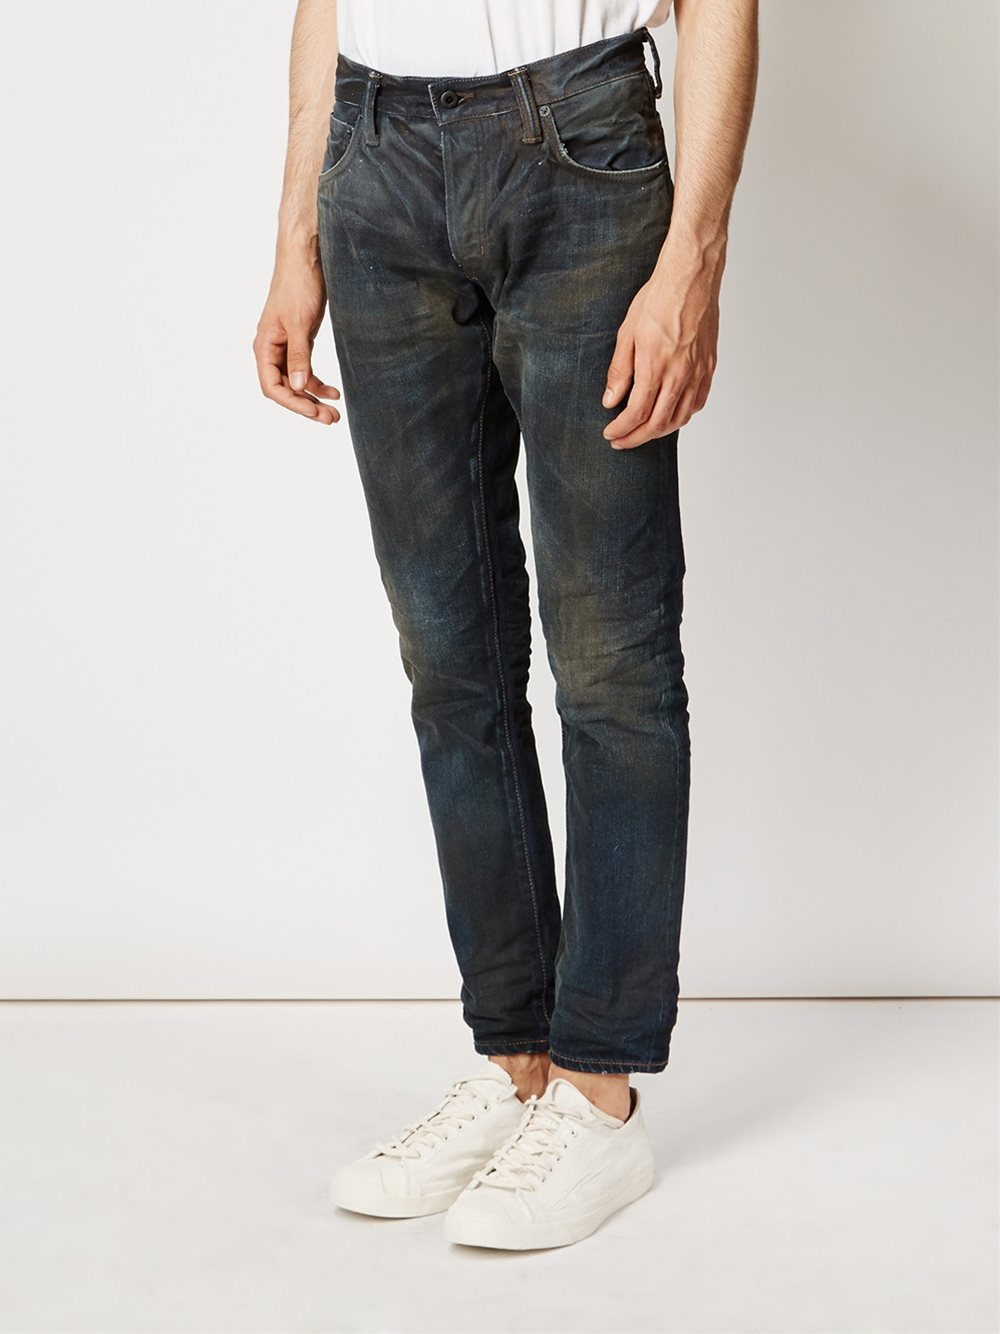 Mastercraft Union Dirty Wash Jeans In Blue For Men Lyst